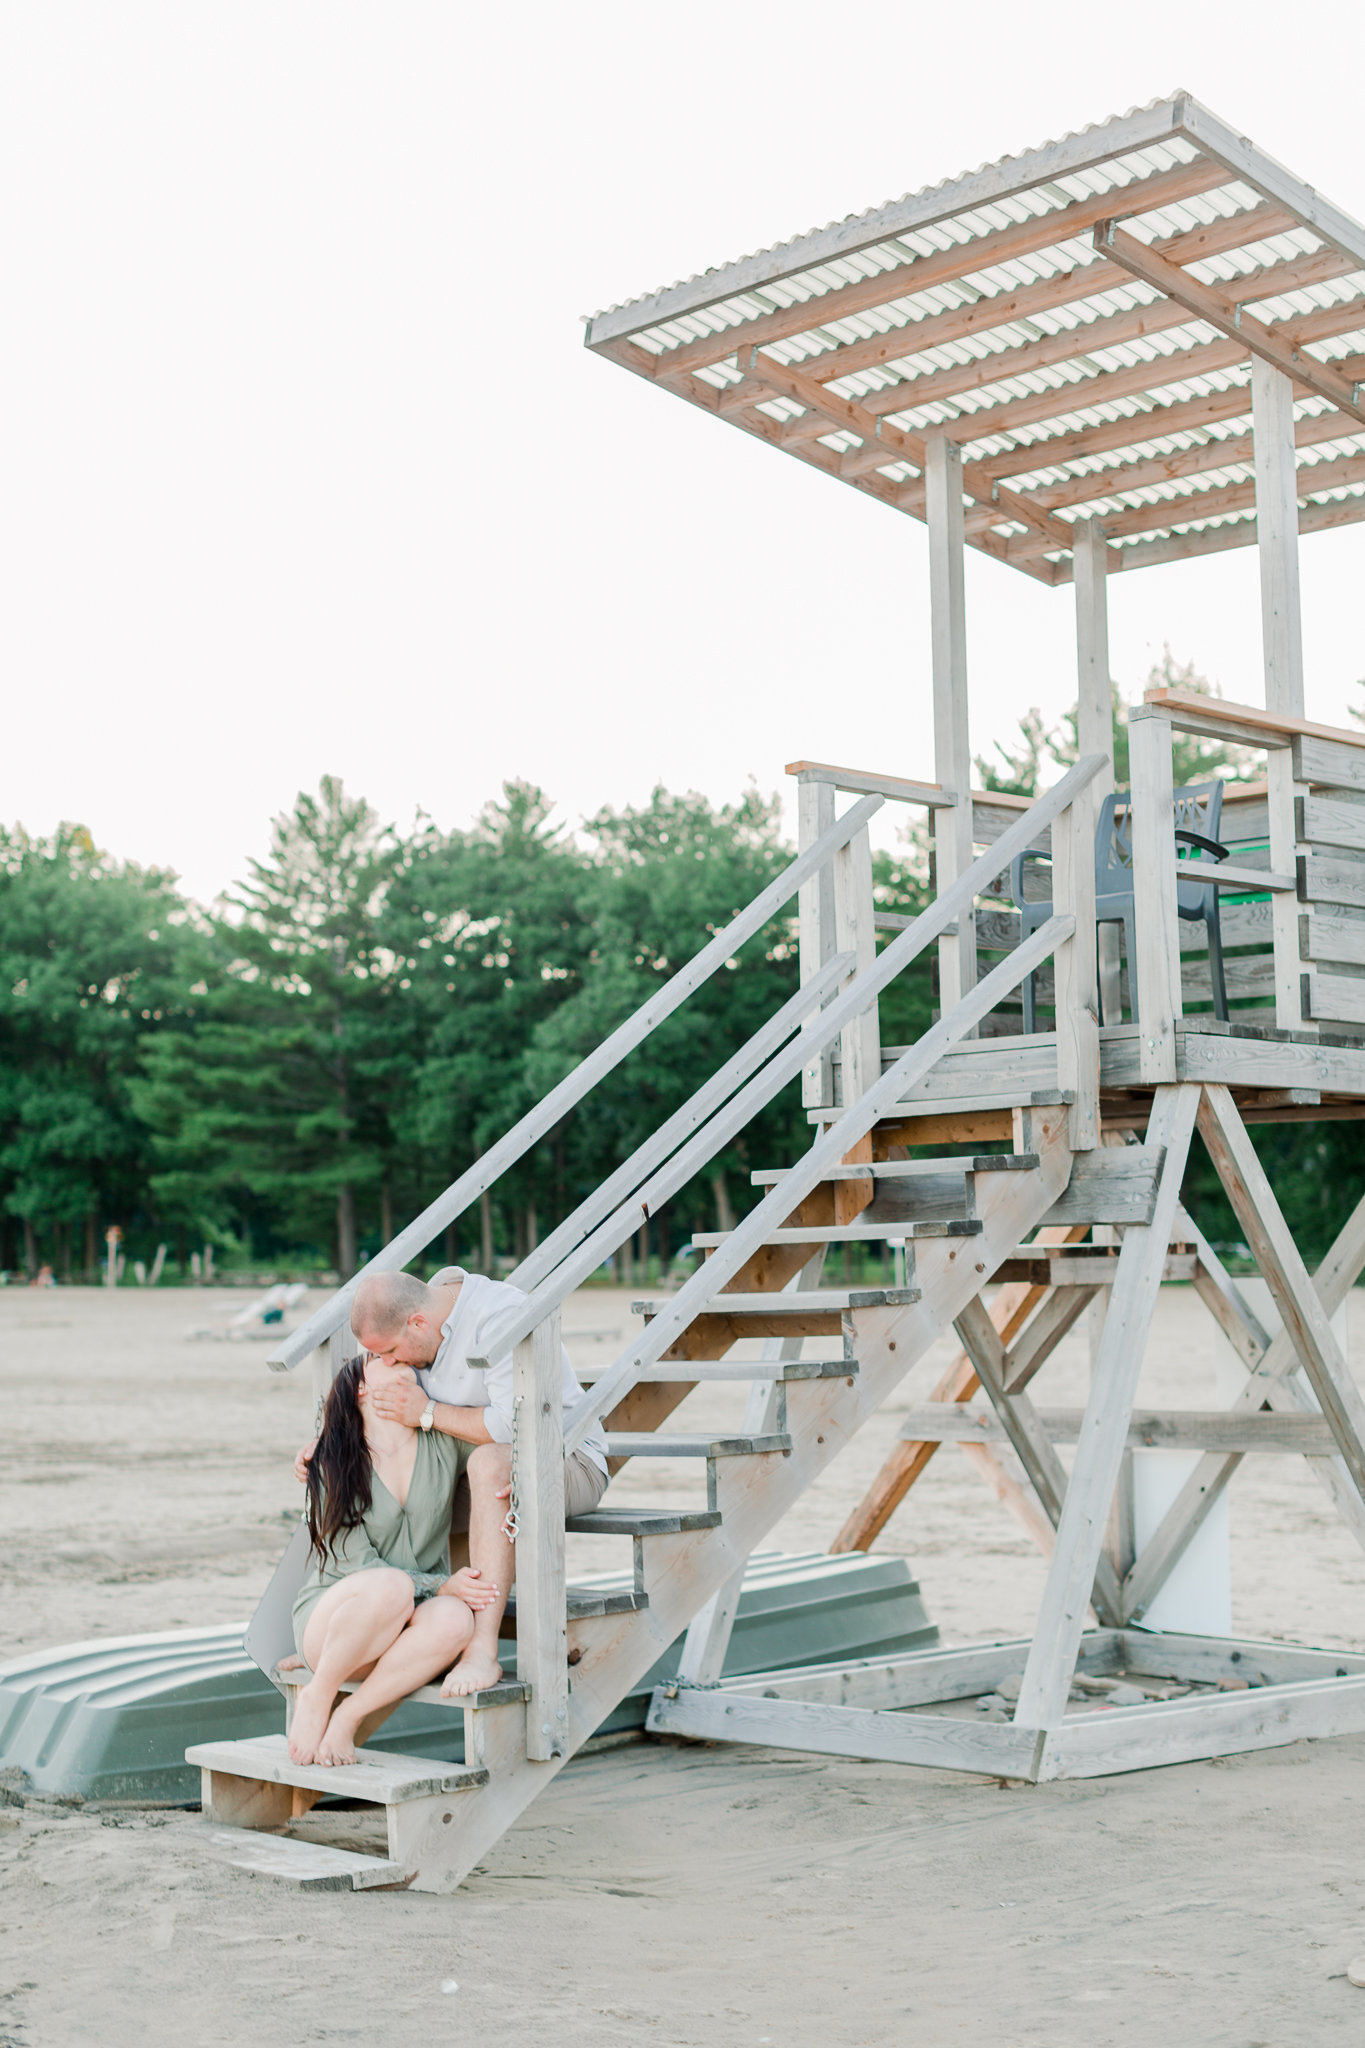 photographe-fiancailles-montreal-parc-national-oka-lisa-renault-photographie-beach-engagement-session-60